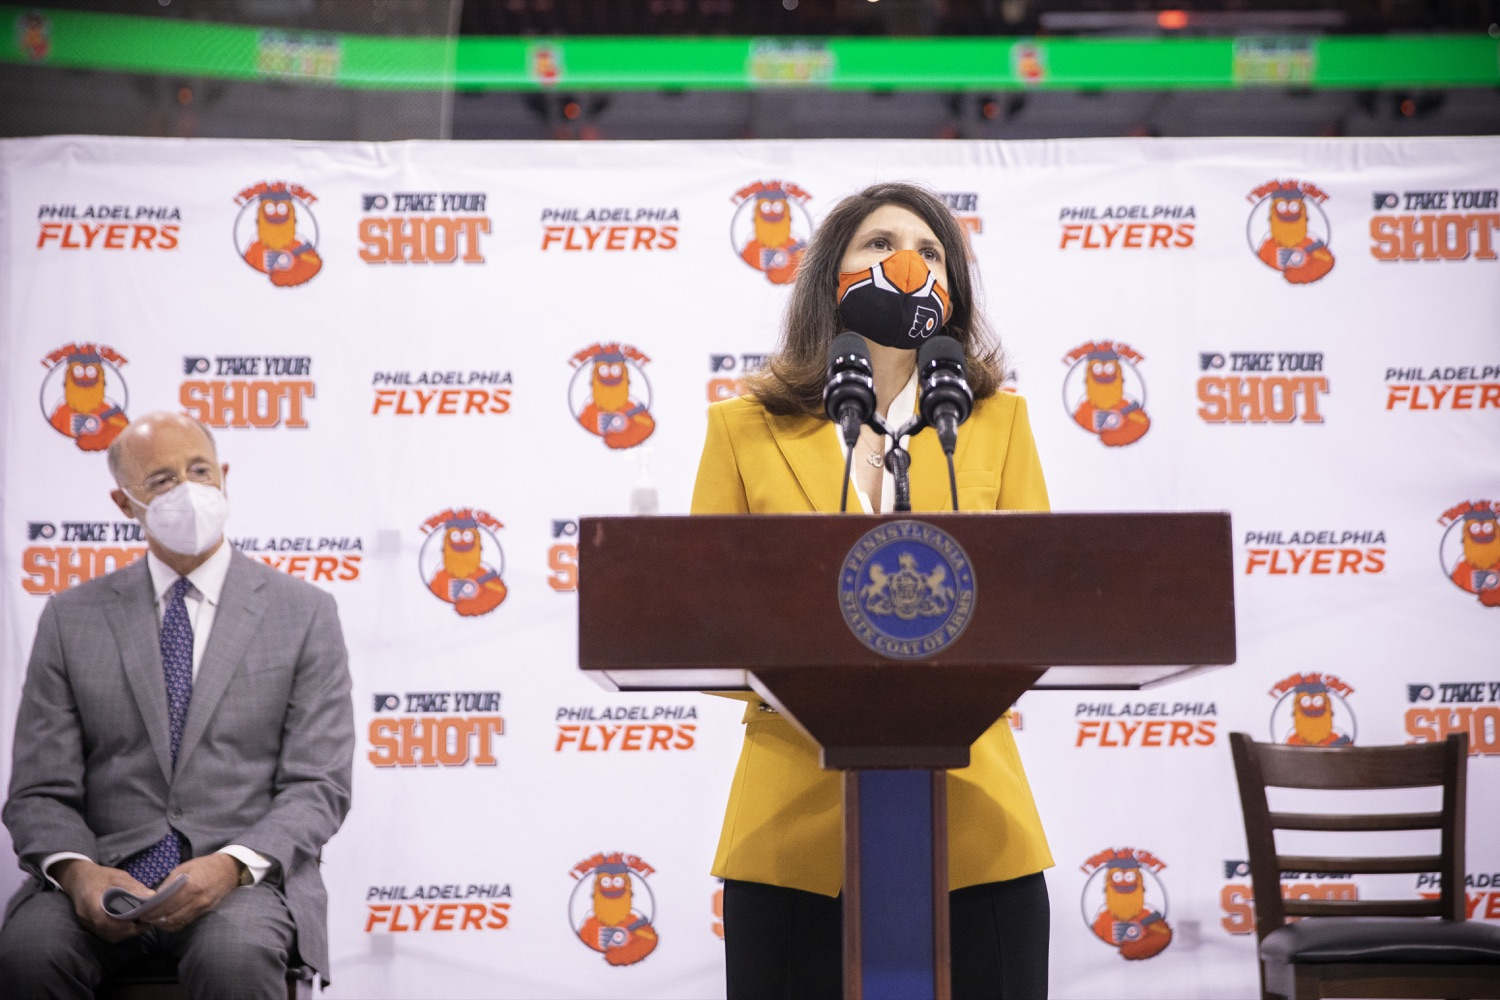 """<a href=""""https://filesource.wostreaming.net/commonwealthofpa/photo/18727_gov_vaccines_dz_019.jpg"""" target=""""_blank"""">⇣Download Photo<br></a>Valerie Camillo, President of Business Operations, Philadelphia Flyers & Wells Fargo speaking with the press.   Governor Tom Wolf today visited the Philadelphia Flyers organization at the Wells Fargo Center in Philadelphia to discuss COVID-19 vaccine efforts in Pennsylvania. The Flyers recently launched a comprehensive COVID-19 vaccine campaign, Take Your Shot, encouraging Pennsylvanians to get vaccinated.  Philadelphia, PA  MAY 3, 2021"""